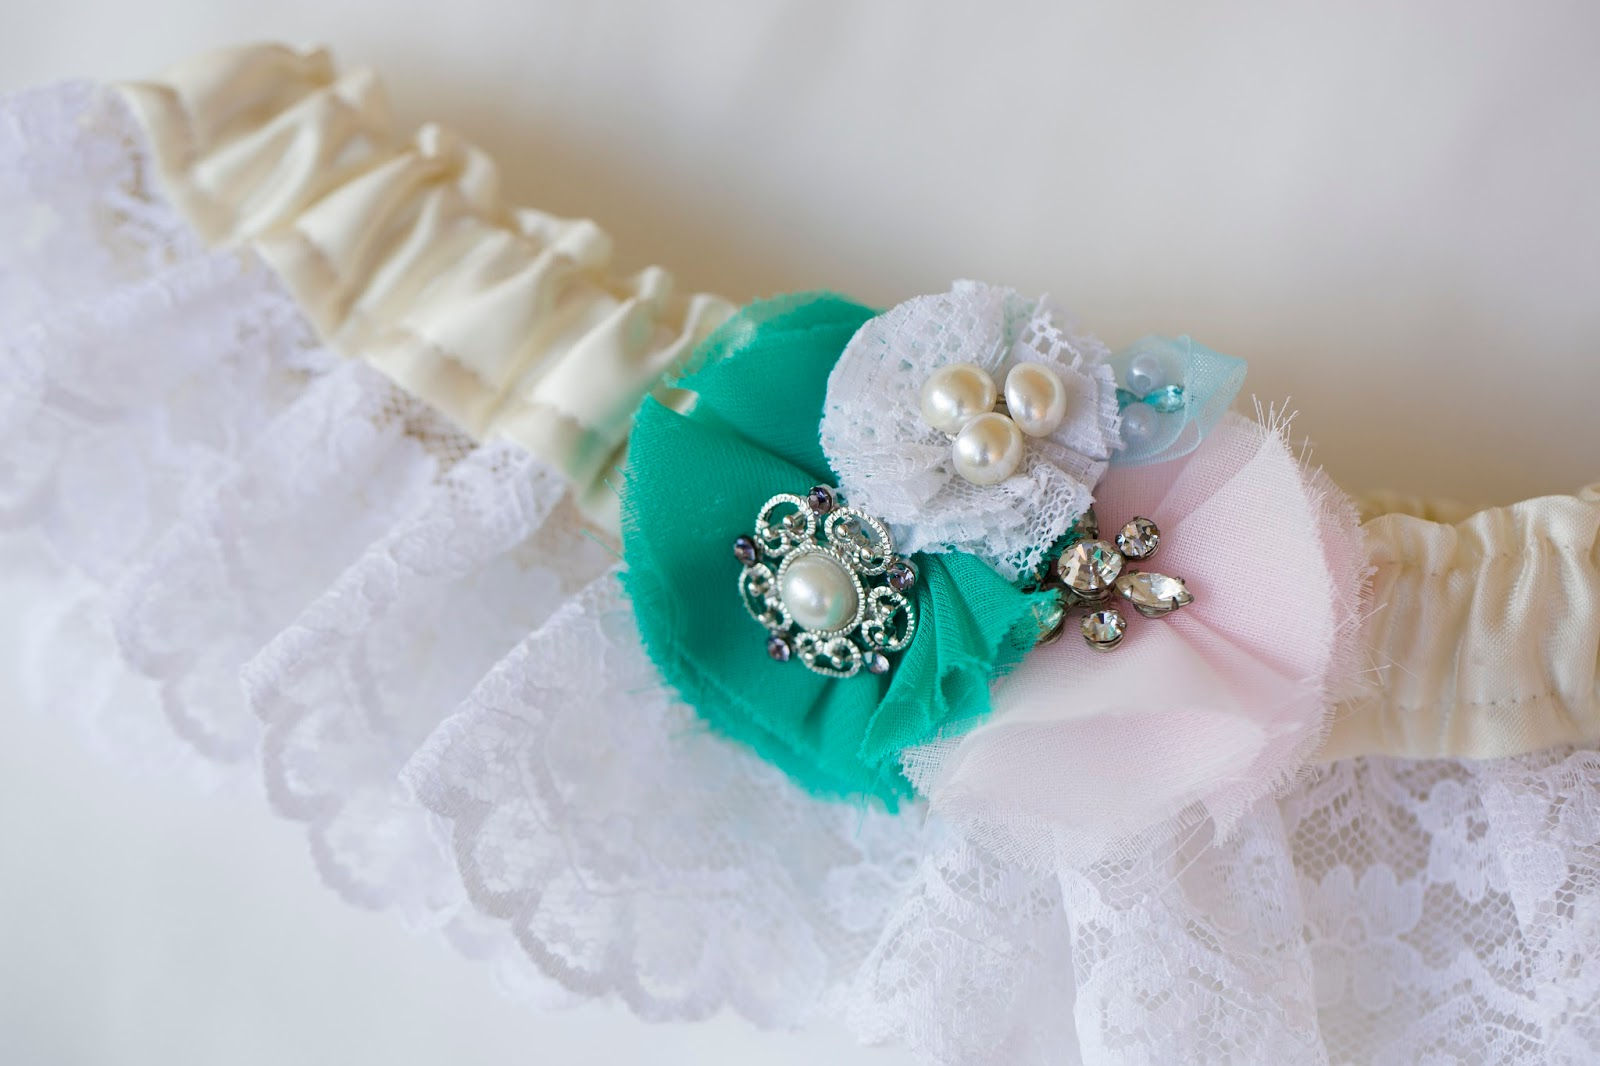 Wedding Wednesday- DIY Keepsake Garter made from mother's wedding dress!